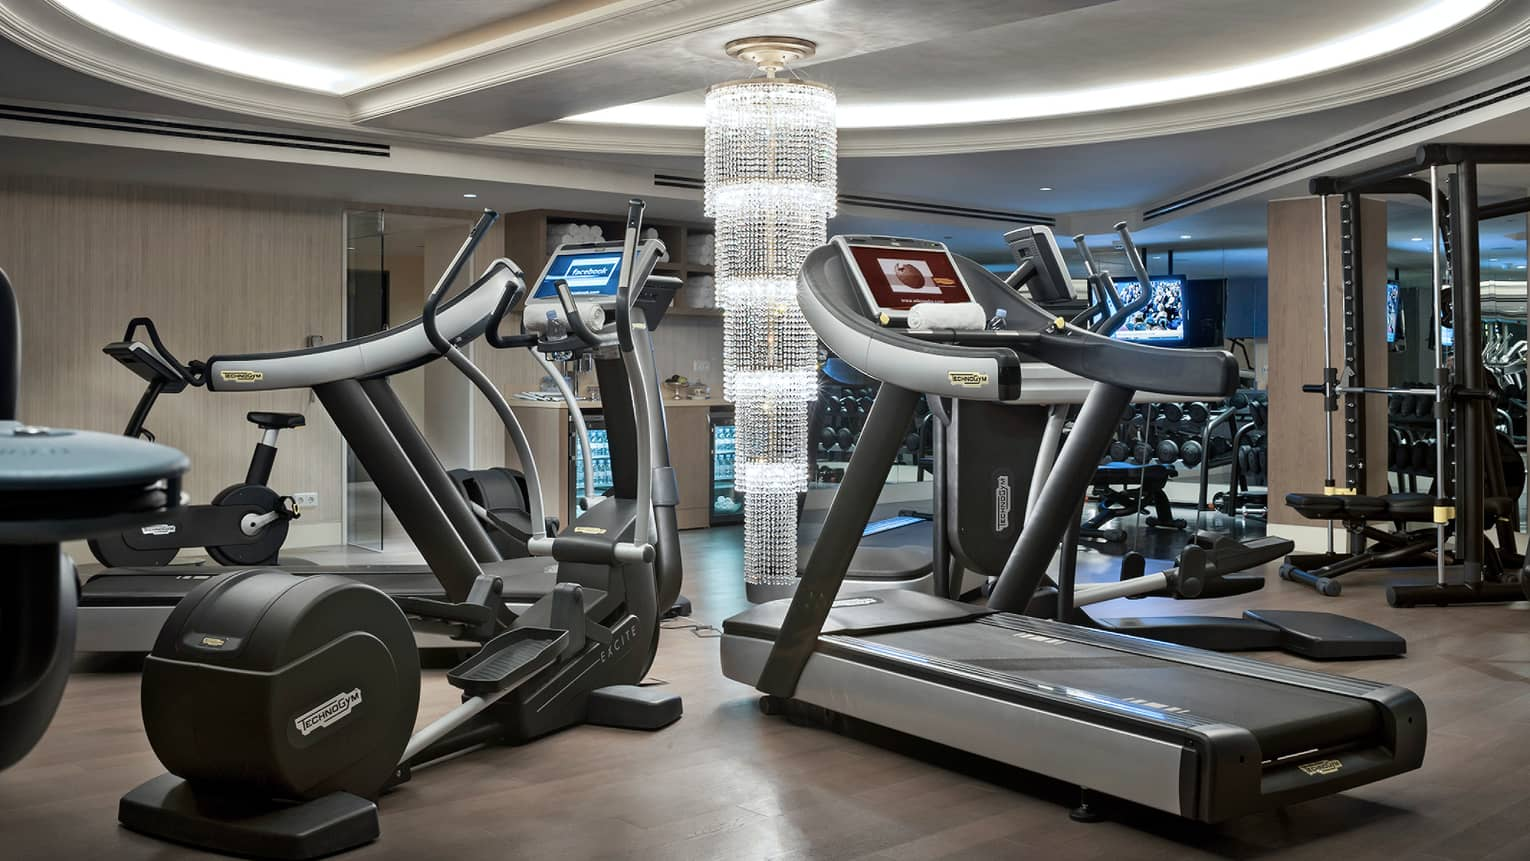 Cardio machines in circle around long crystal chandelier in Fitness Centre